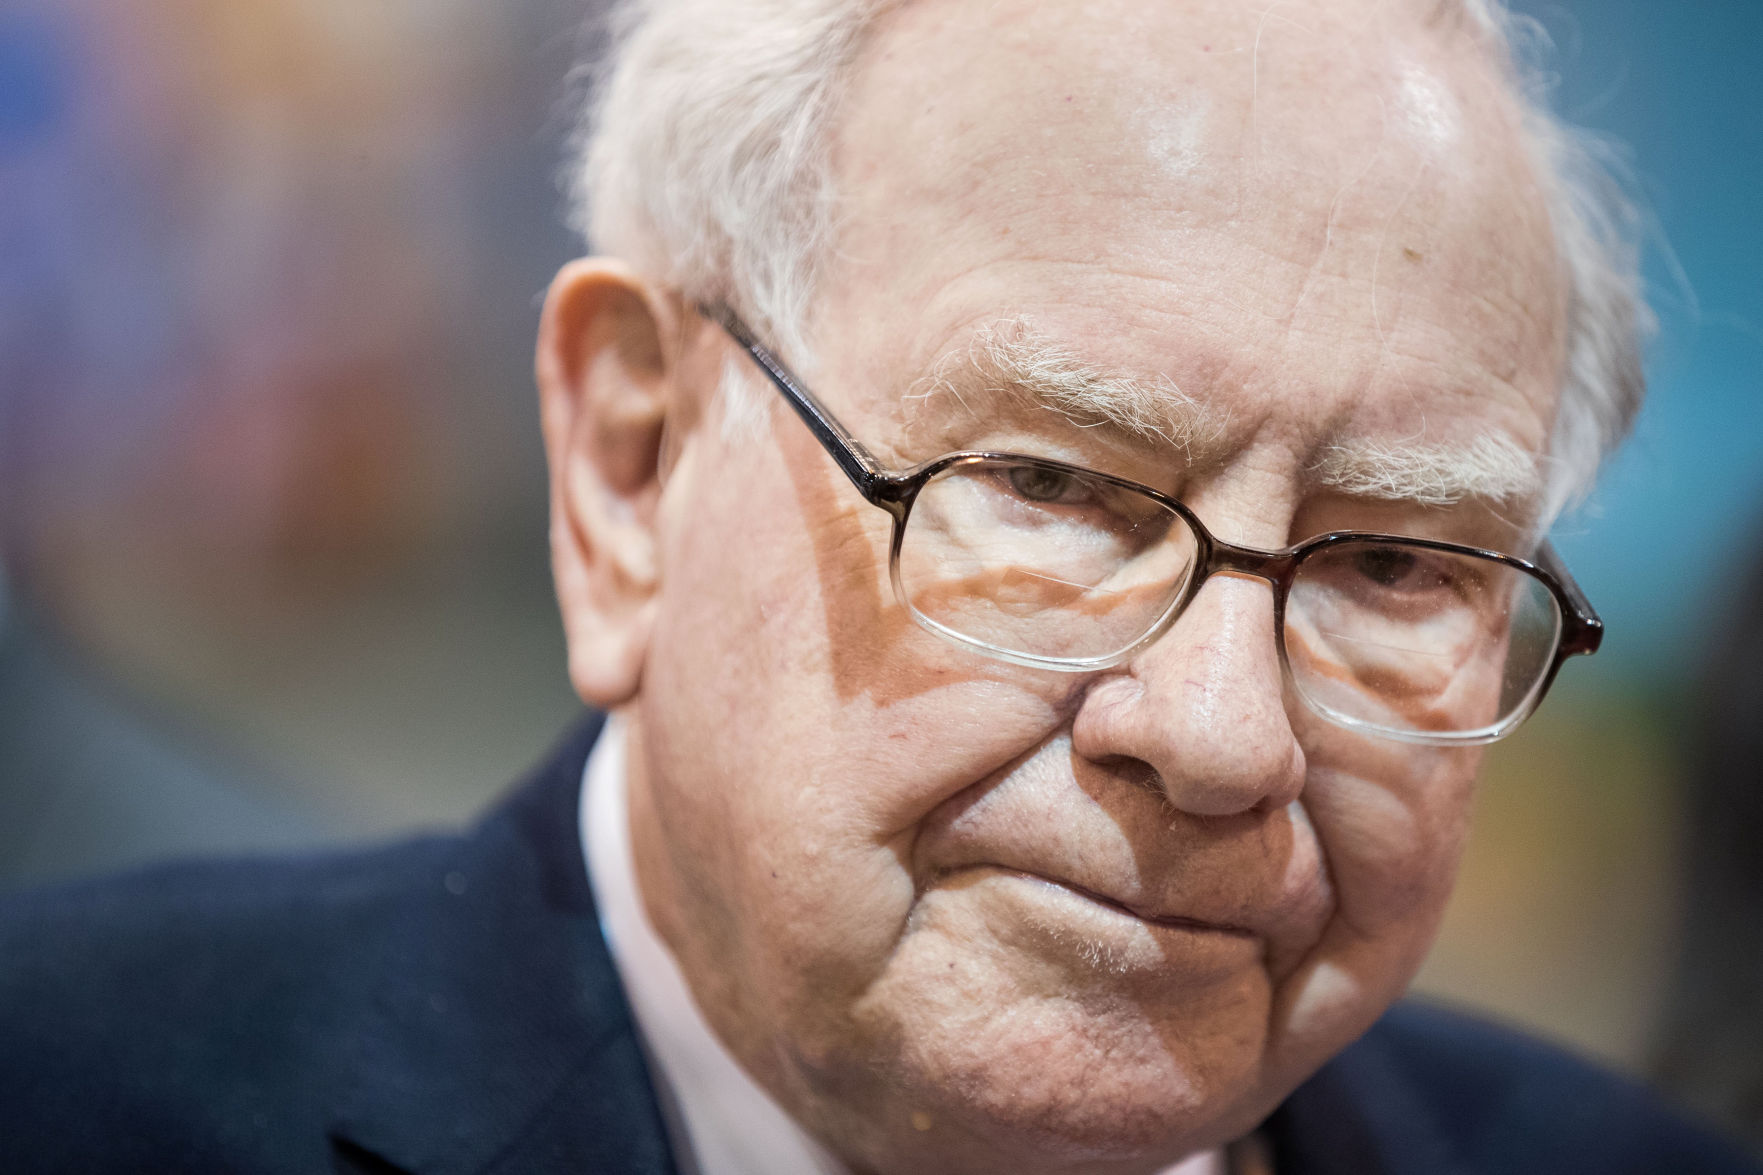 Home Capital Shareholders Reject Buffett's Expanded Stake""